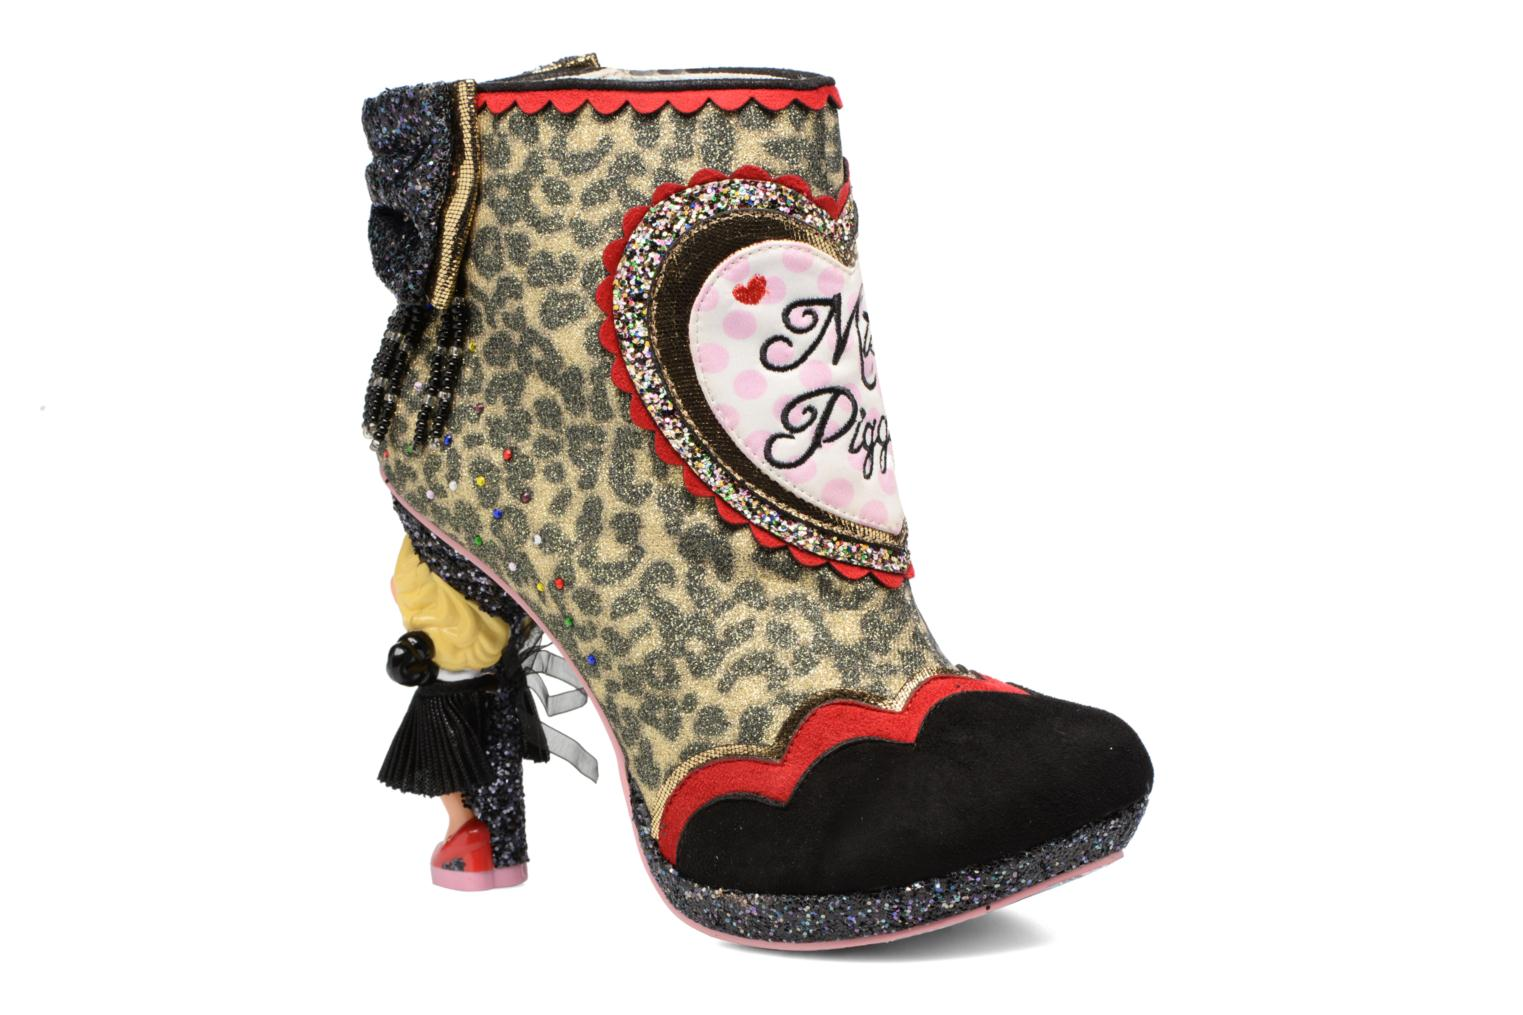 Bottines et boots Irregular Choice Fierce Piggy Multicolore vue détail/paire